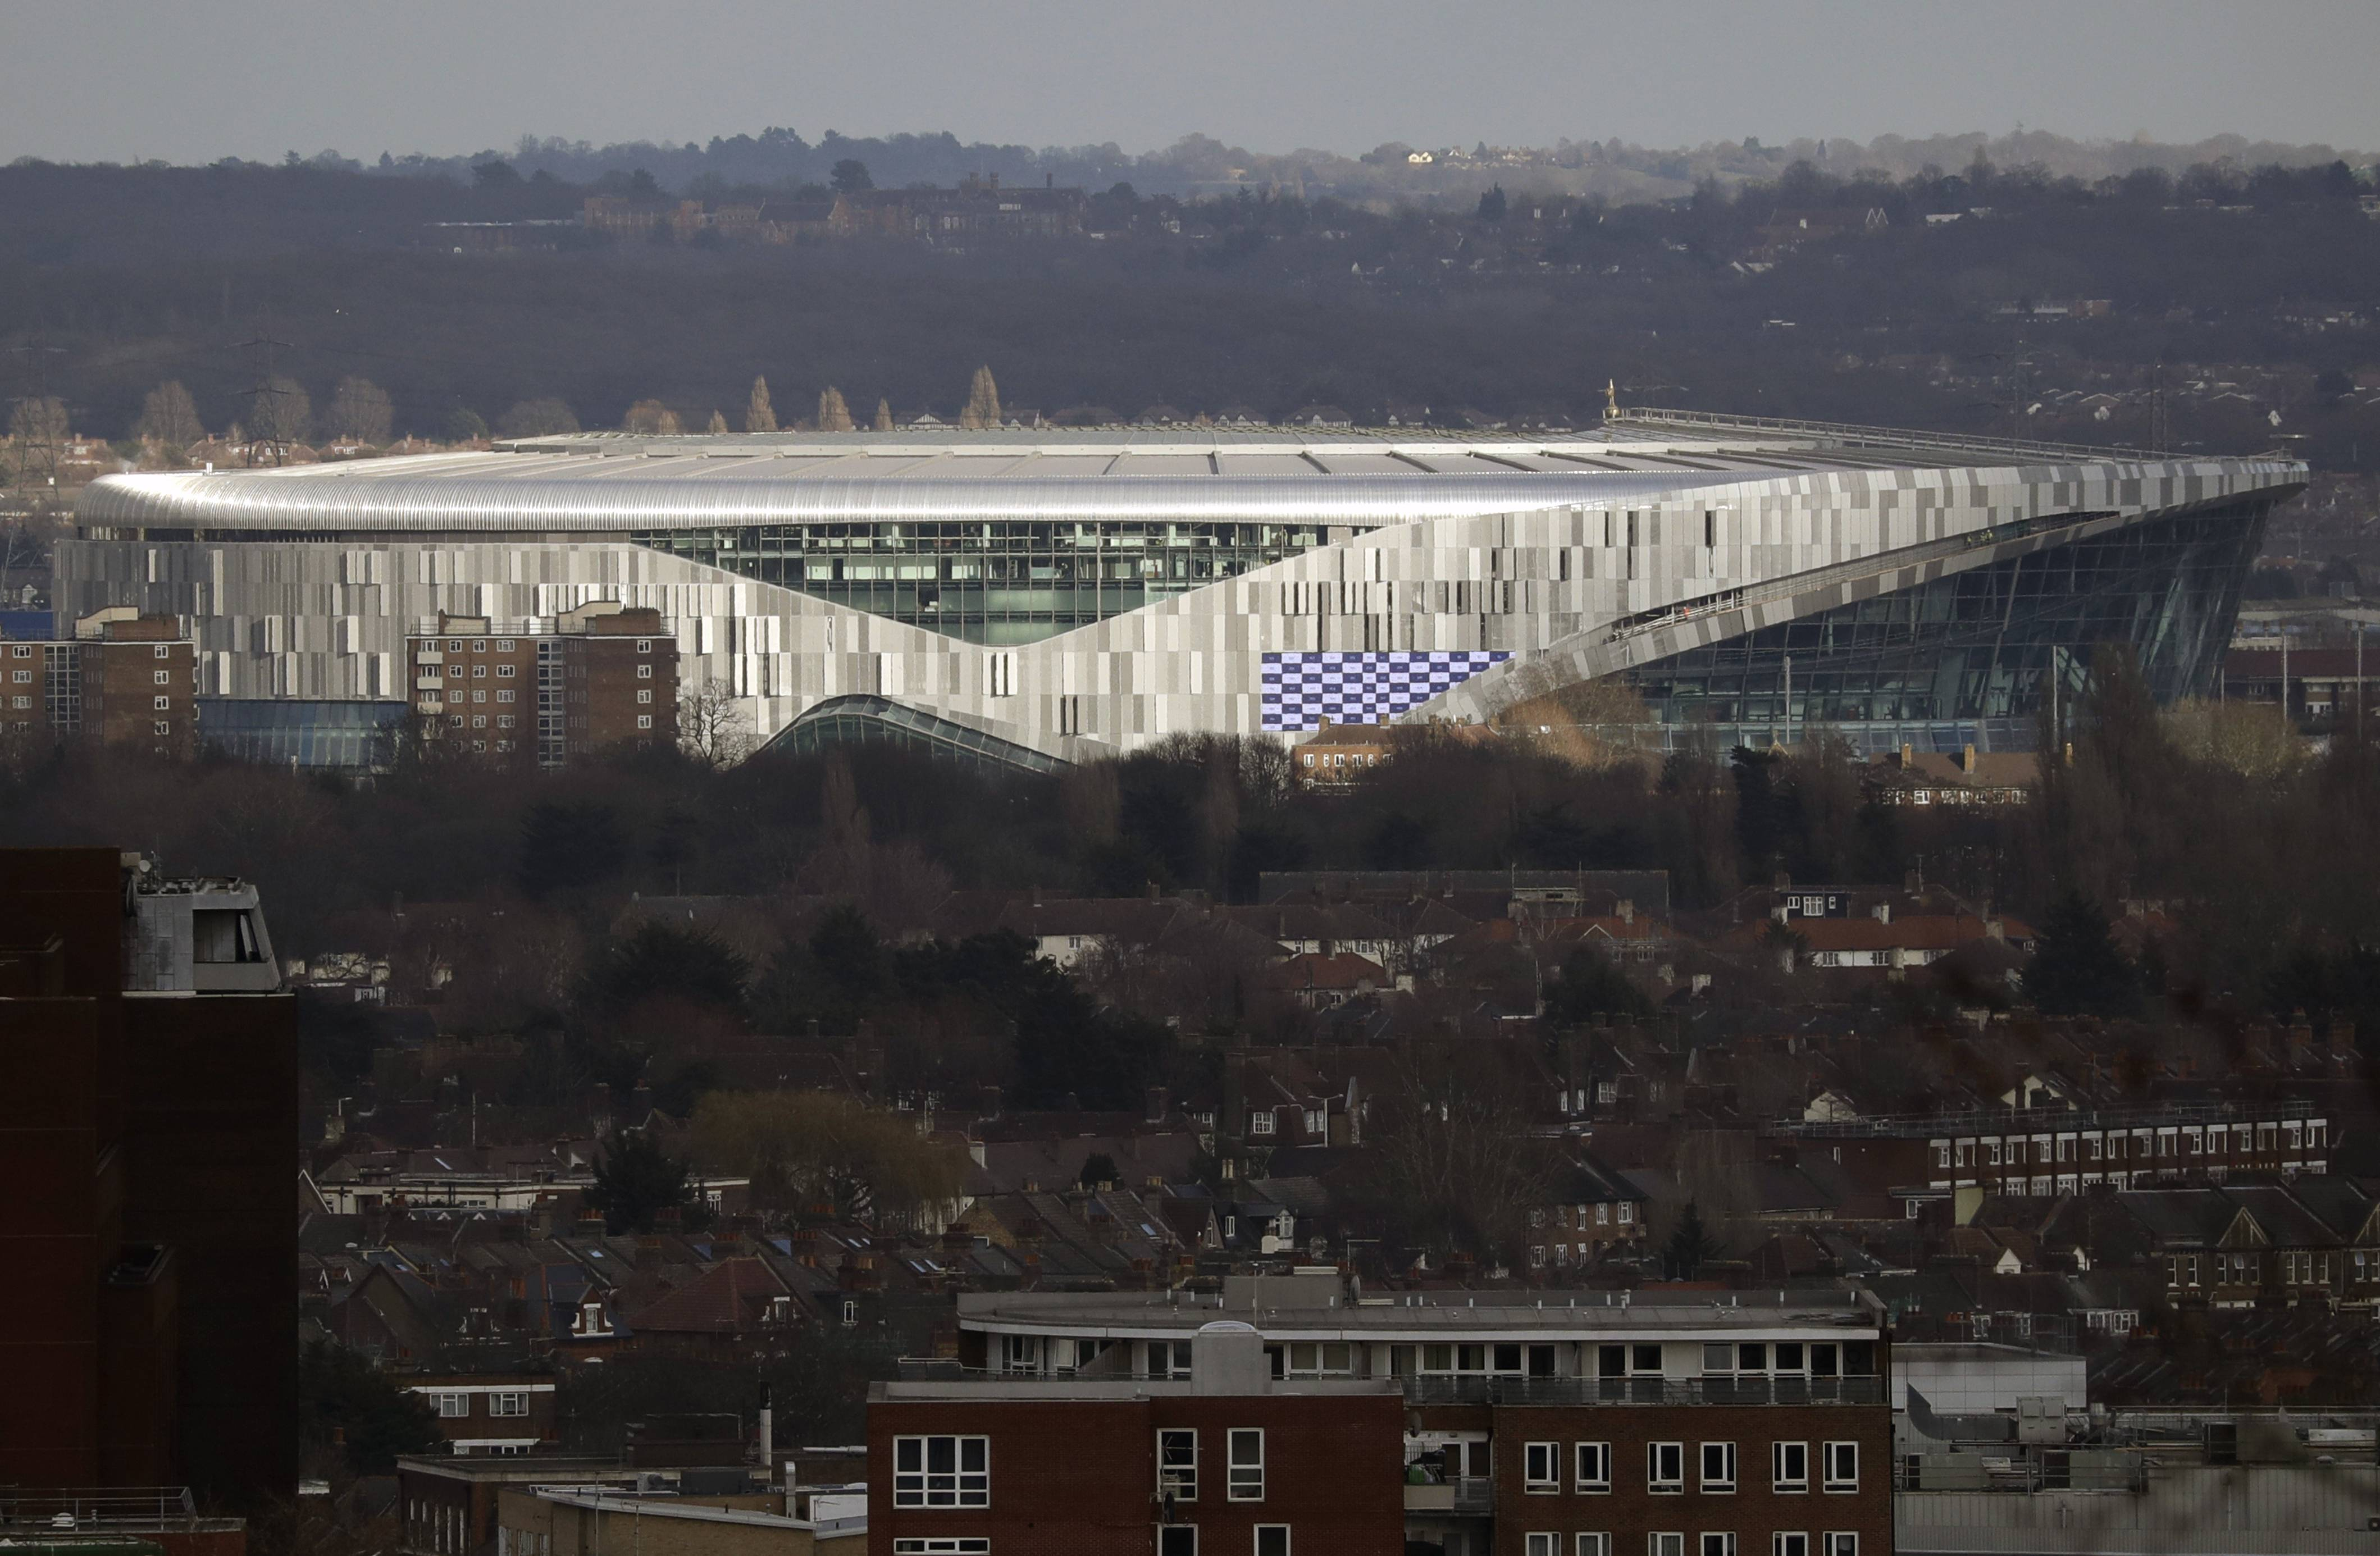 The Chicago Bears will be the first NFL team to play at Tottenham Hotspur's new stadium in London for one of five international games on the 2019 schedule.